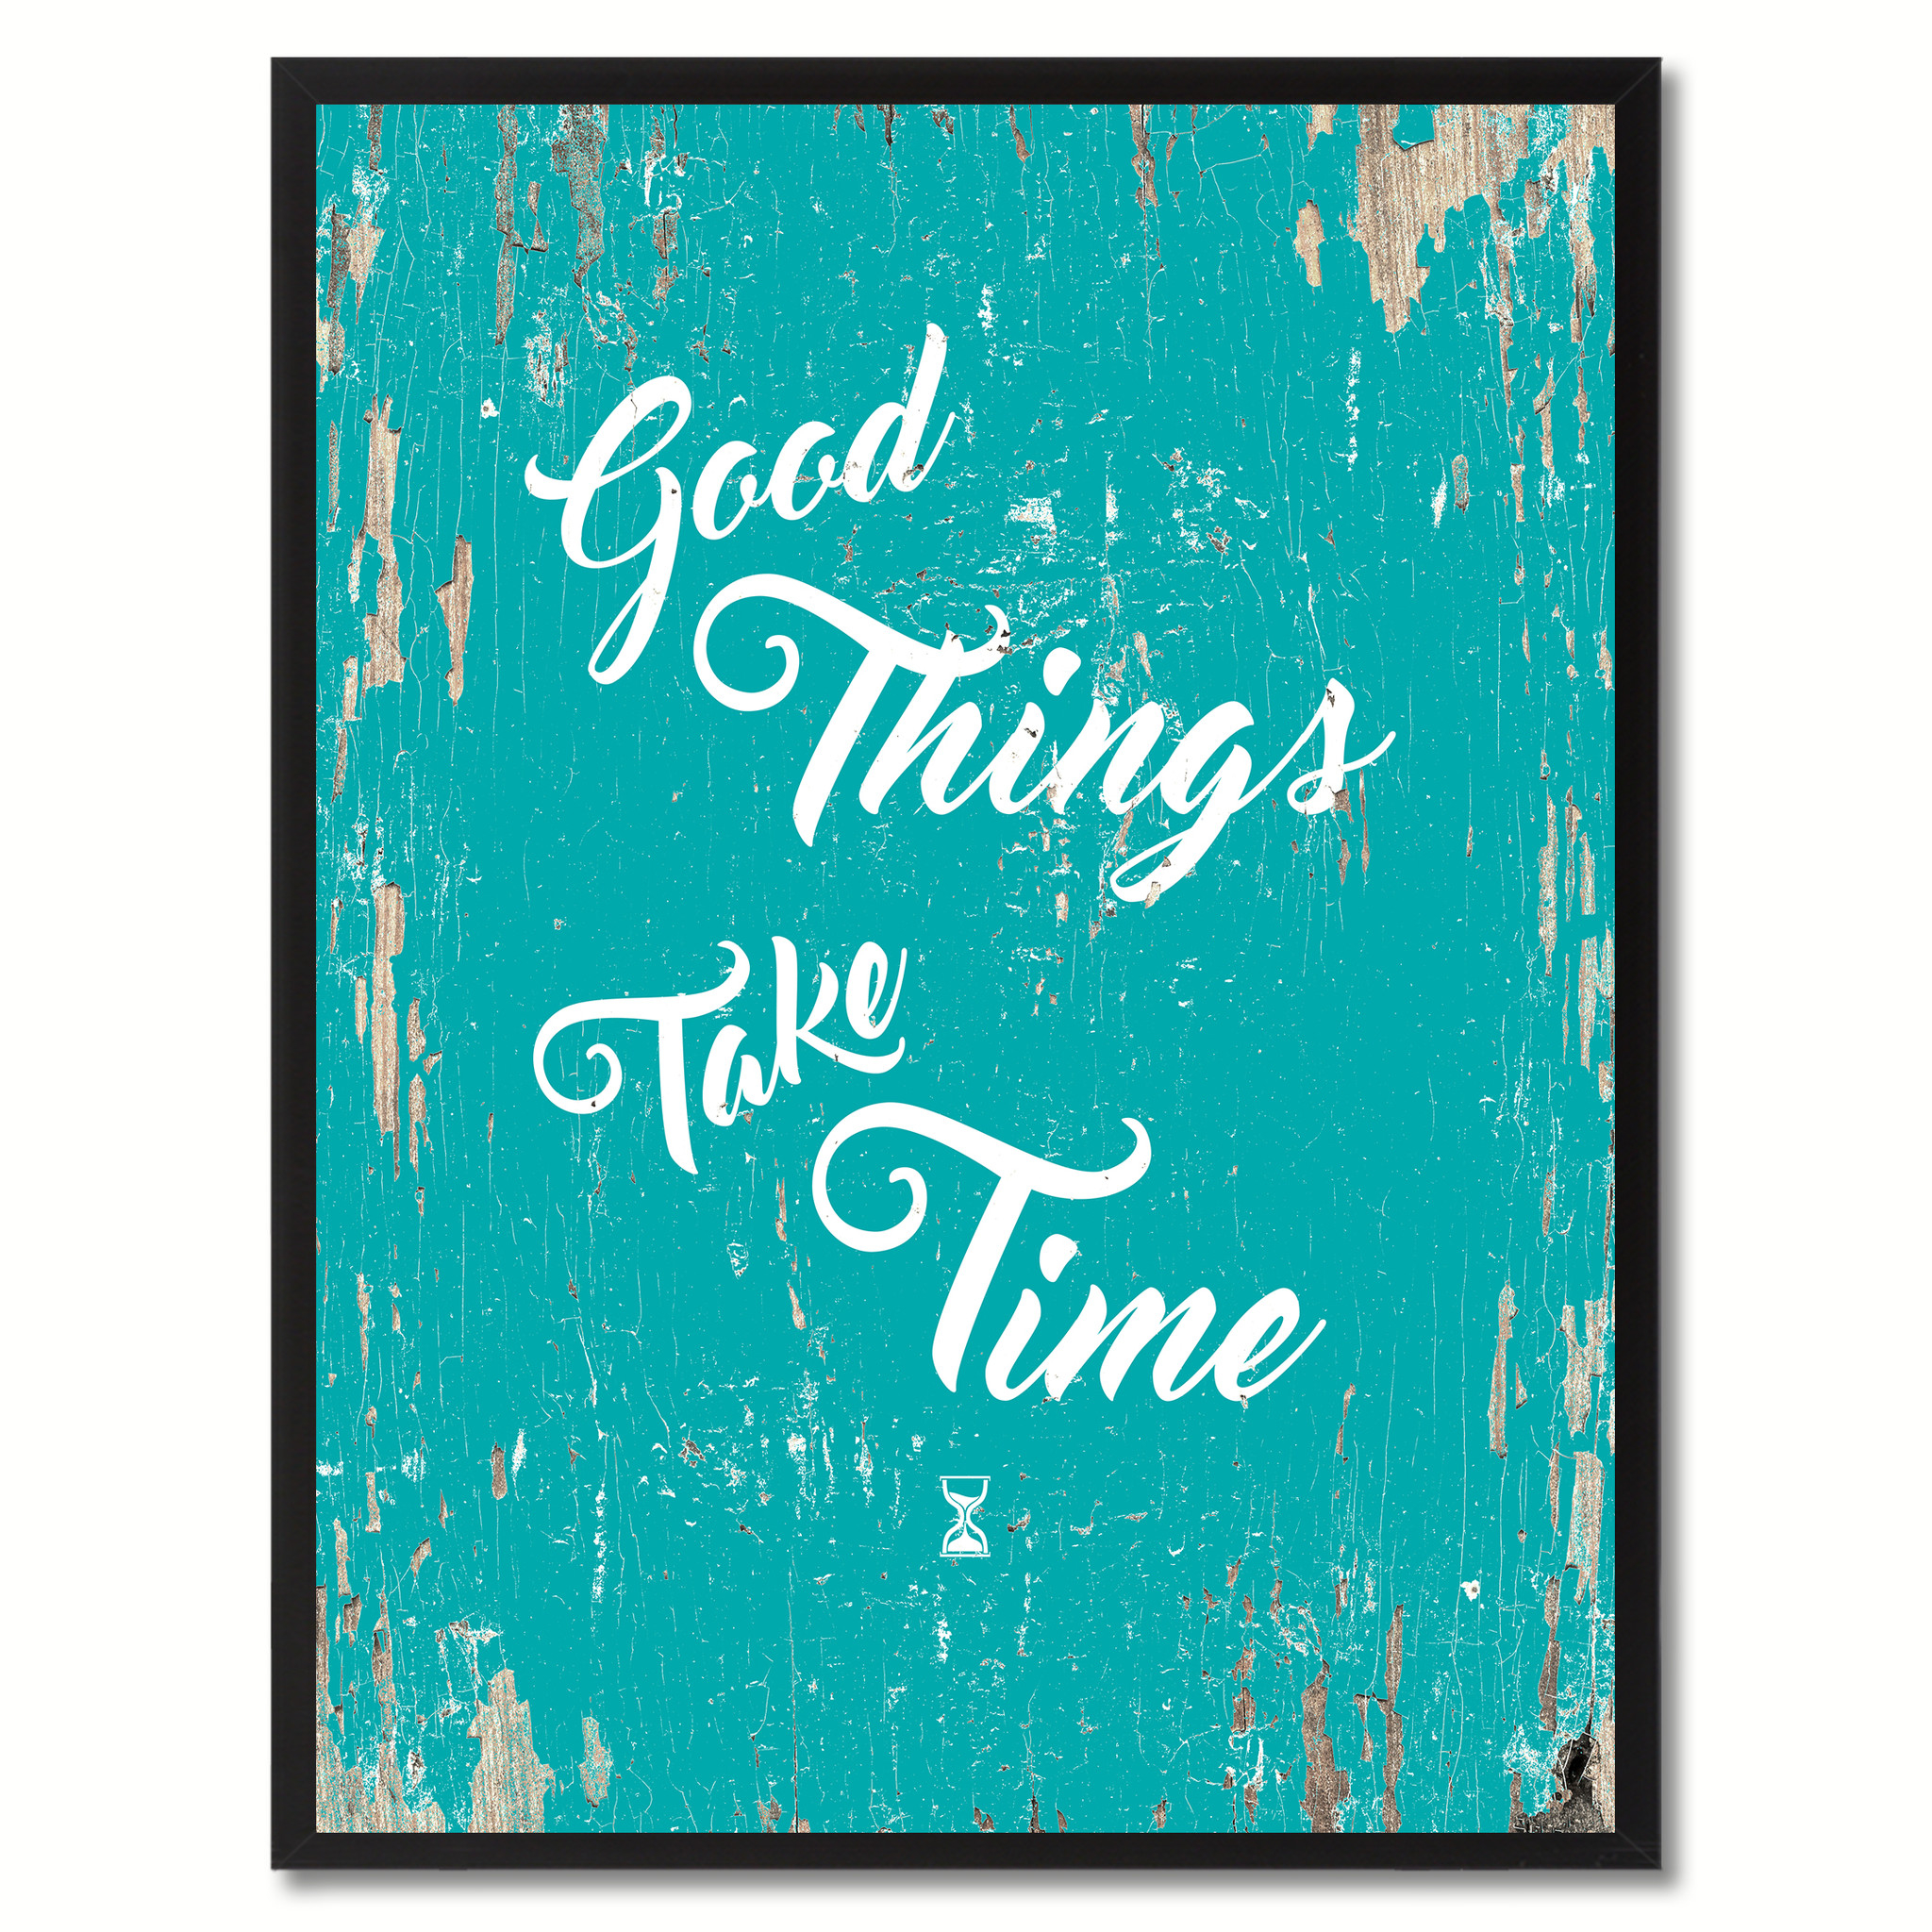 "Good Things Take Time Saying Canvas Print with Picture Frame Home Decor Wall Art Gifts - 7""x9\"""